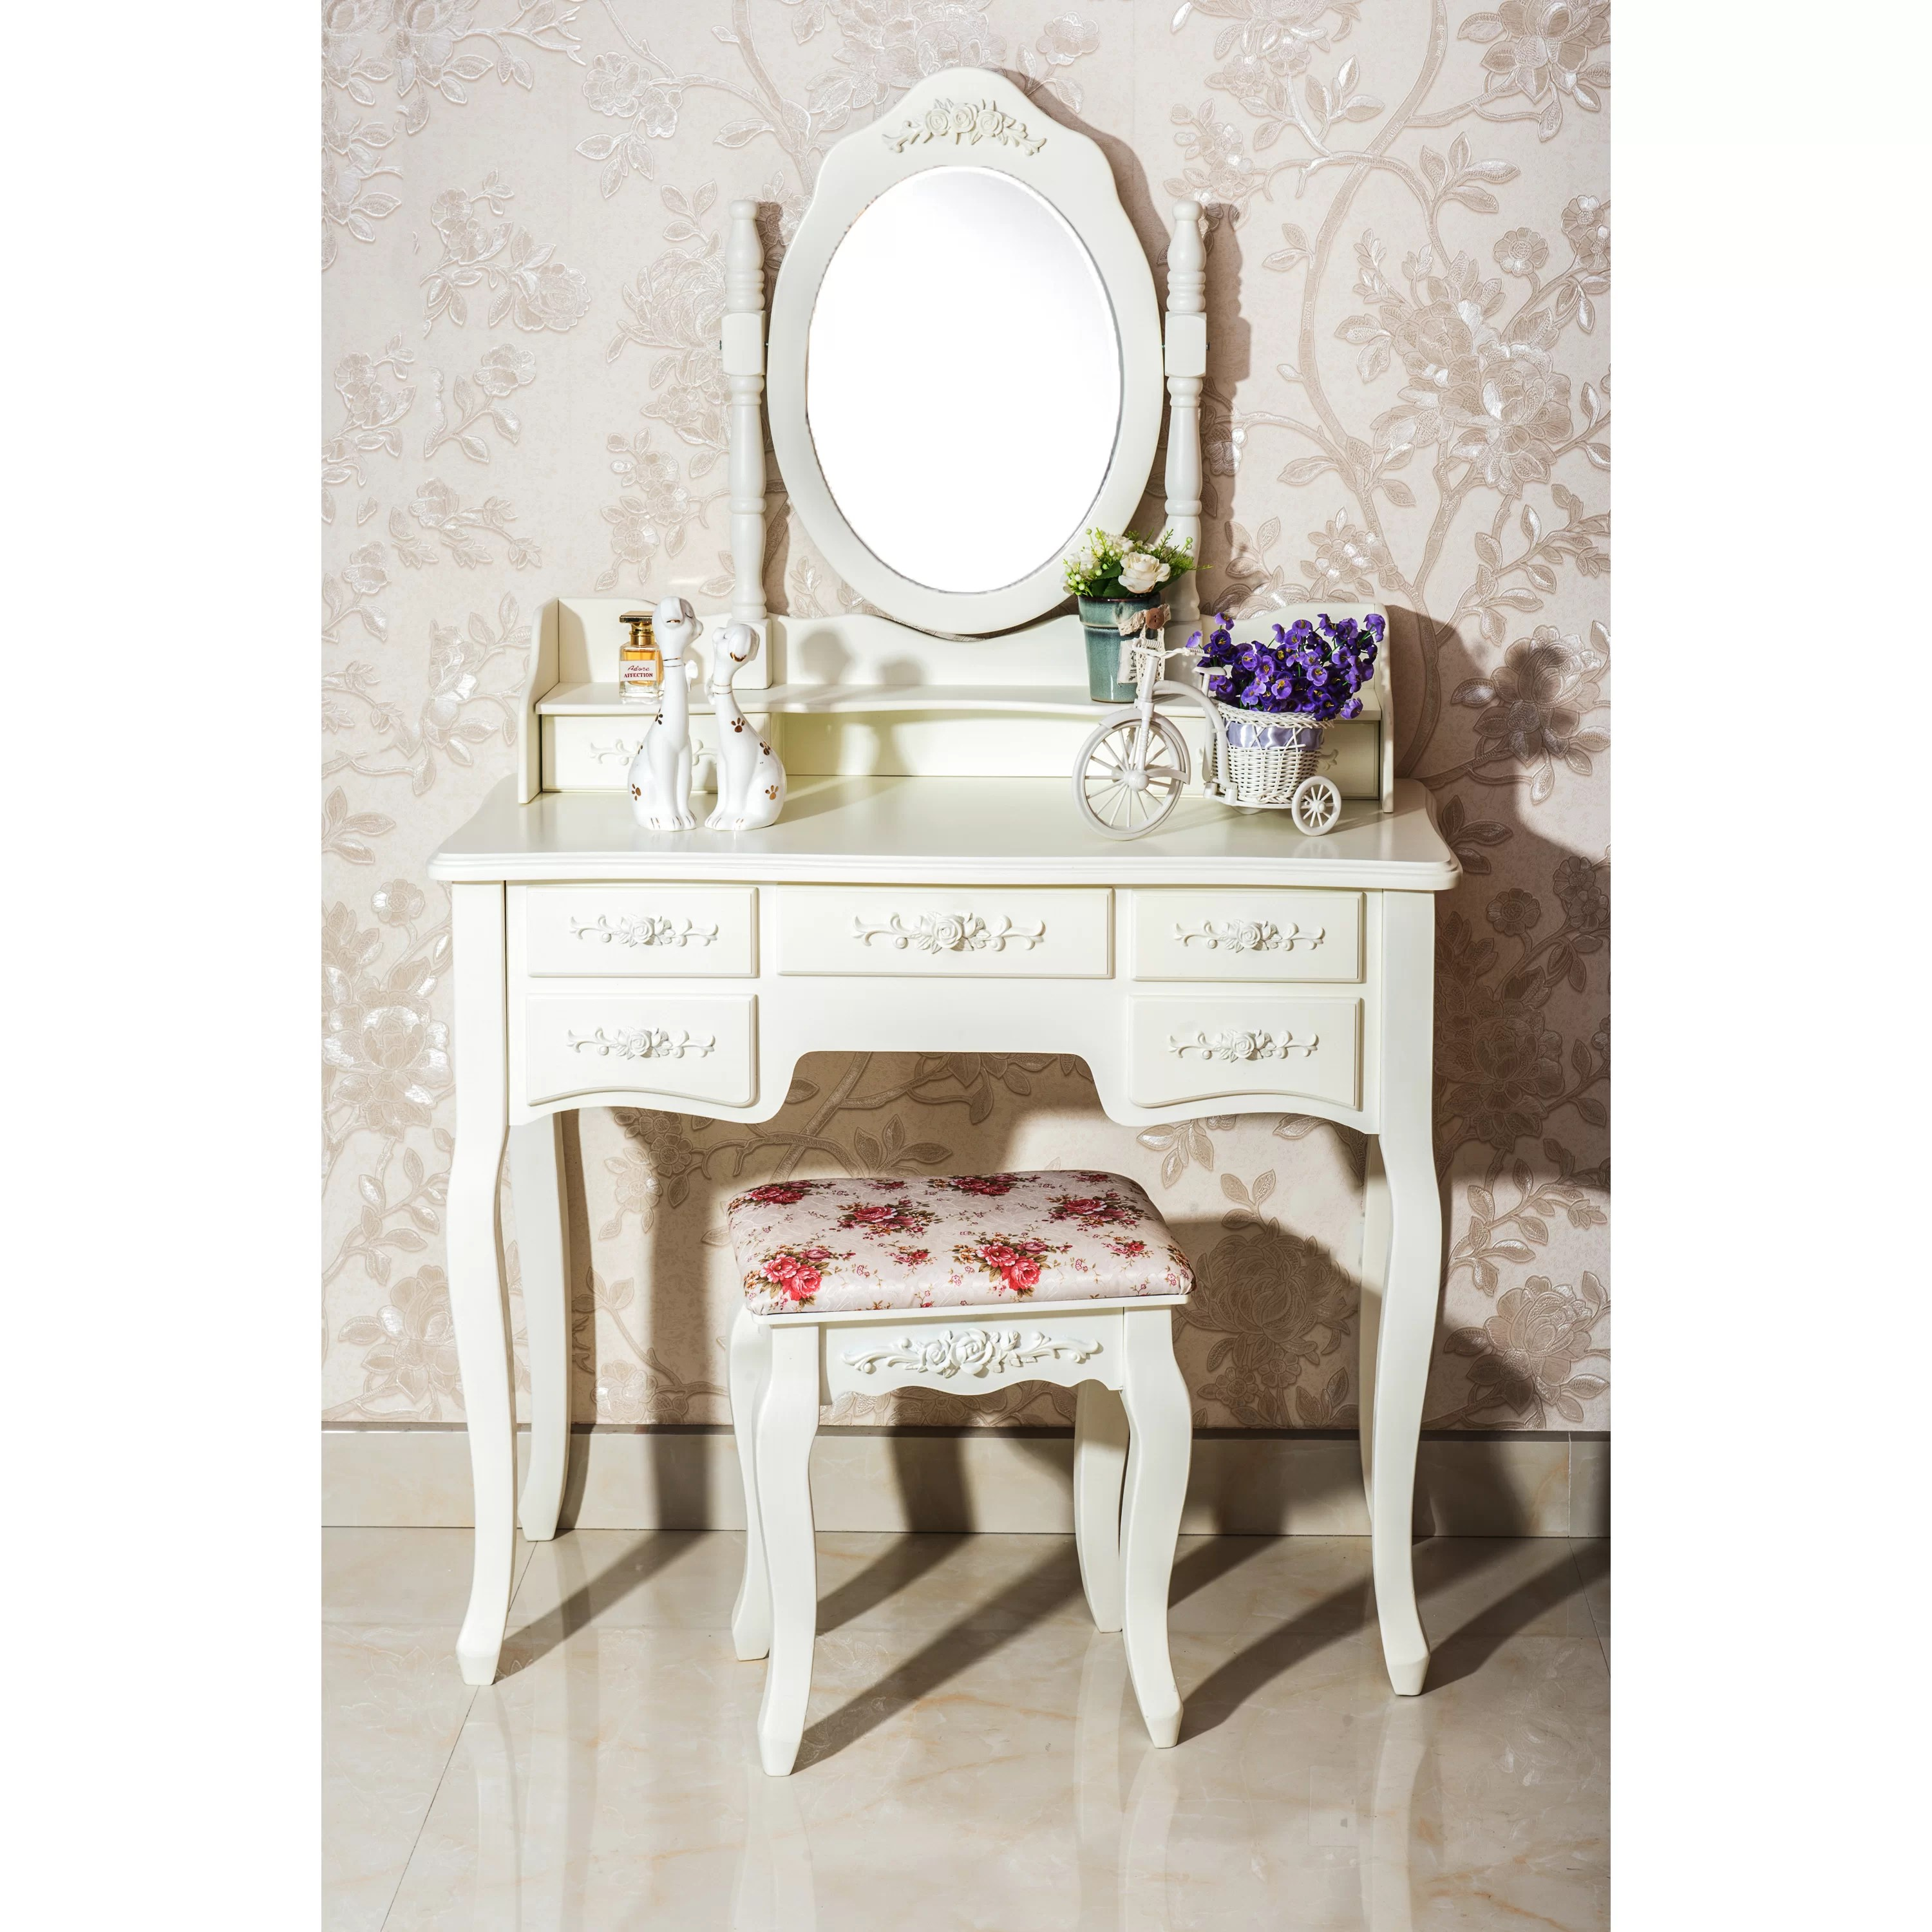 White Label Co Cleopatra 7 Drawer Vanity Set with Mirror